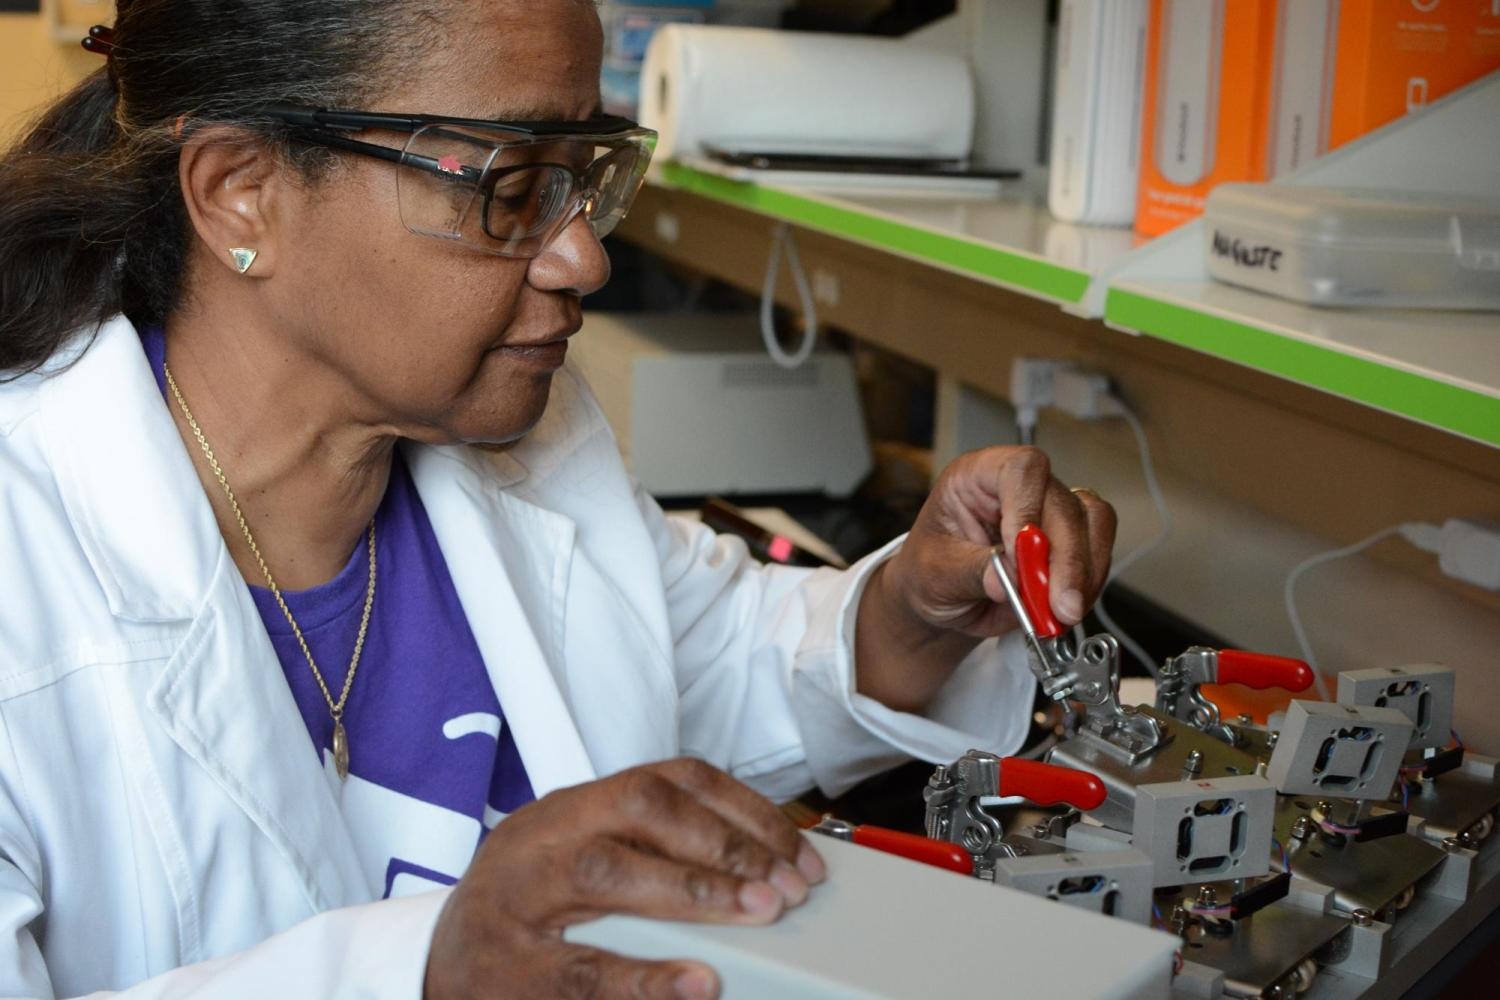 Auguste uses a Markes Micro-chamber to extract volatile organic compounds from a sample.